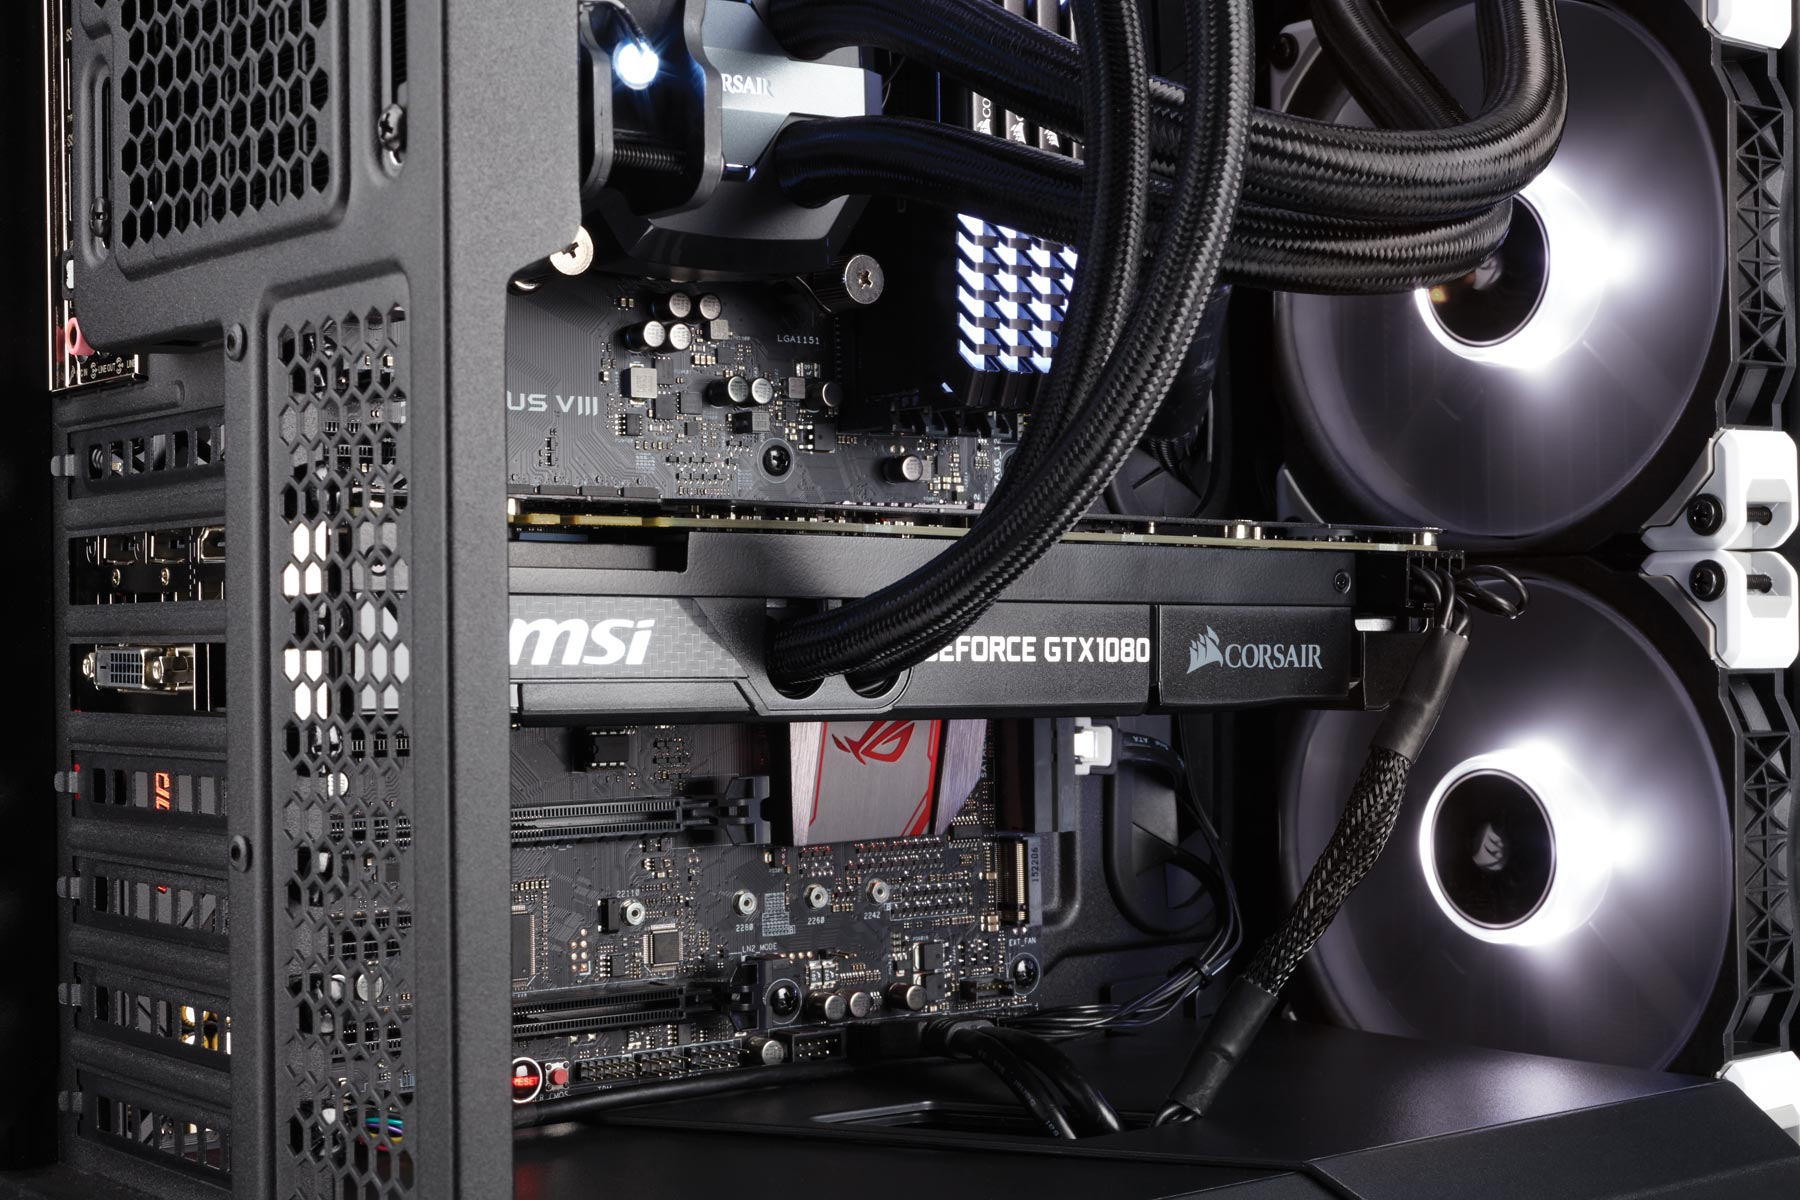 All In One Gpu Liquid Cooling Package From Msi And Corsair